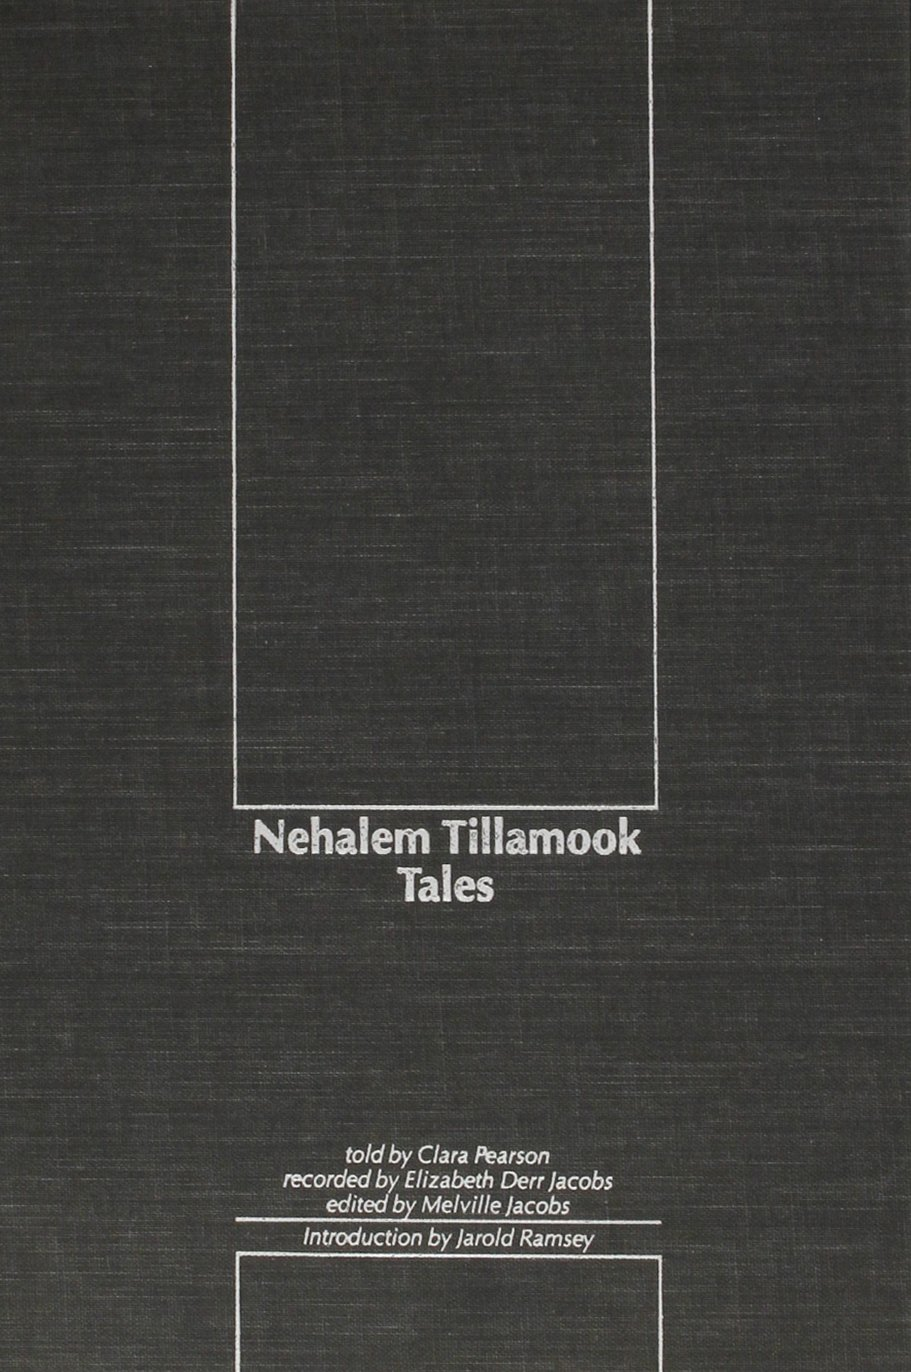 Nehalem Tillamook Tales (Northwest Reprints (Hardcover)), Pearson, Clara